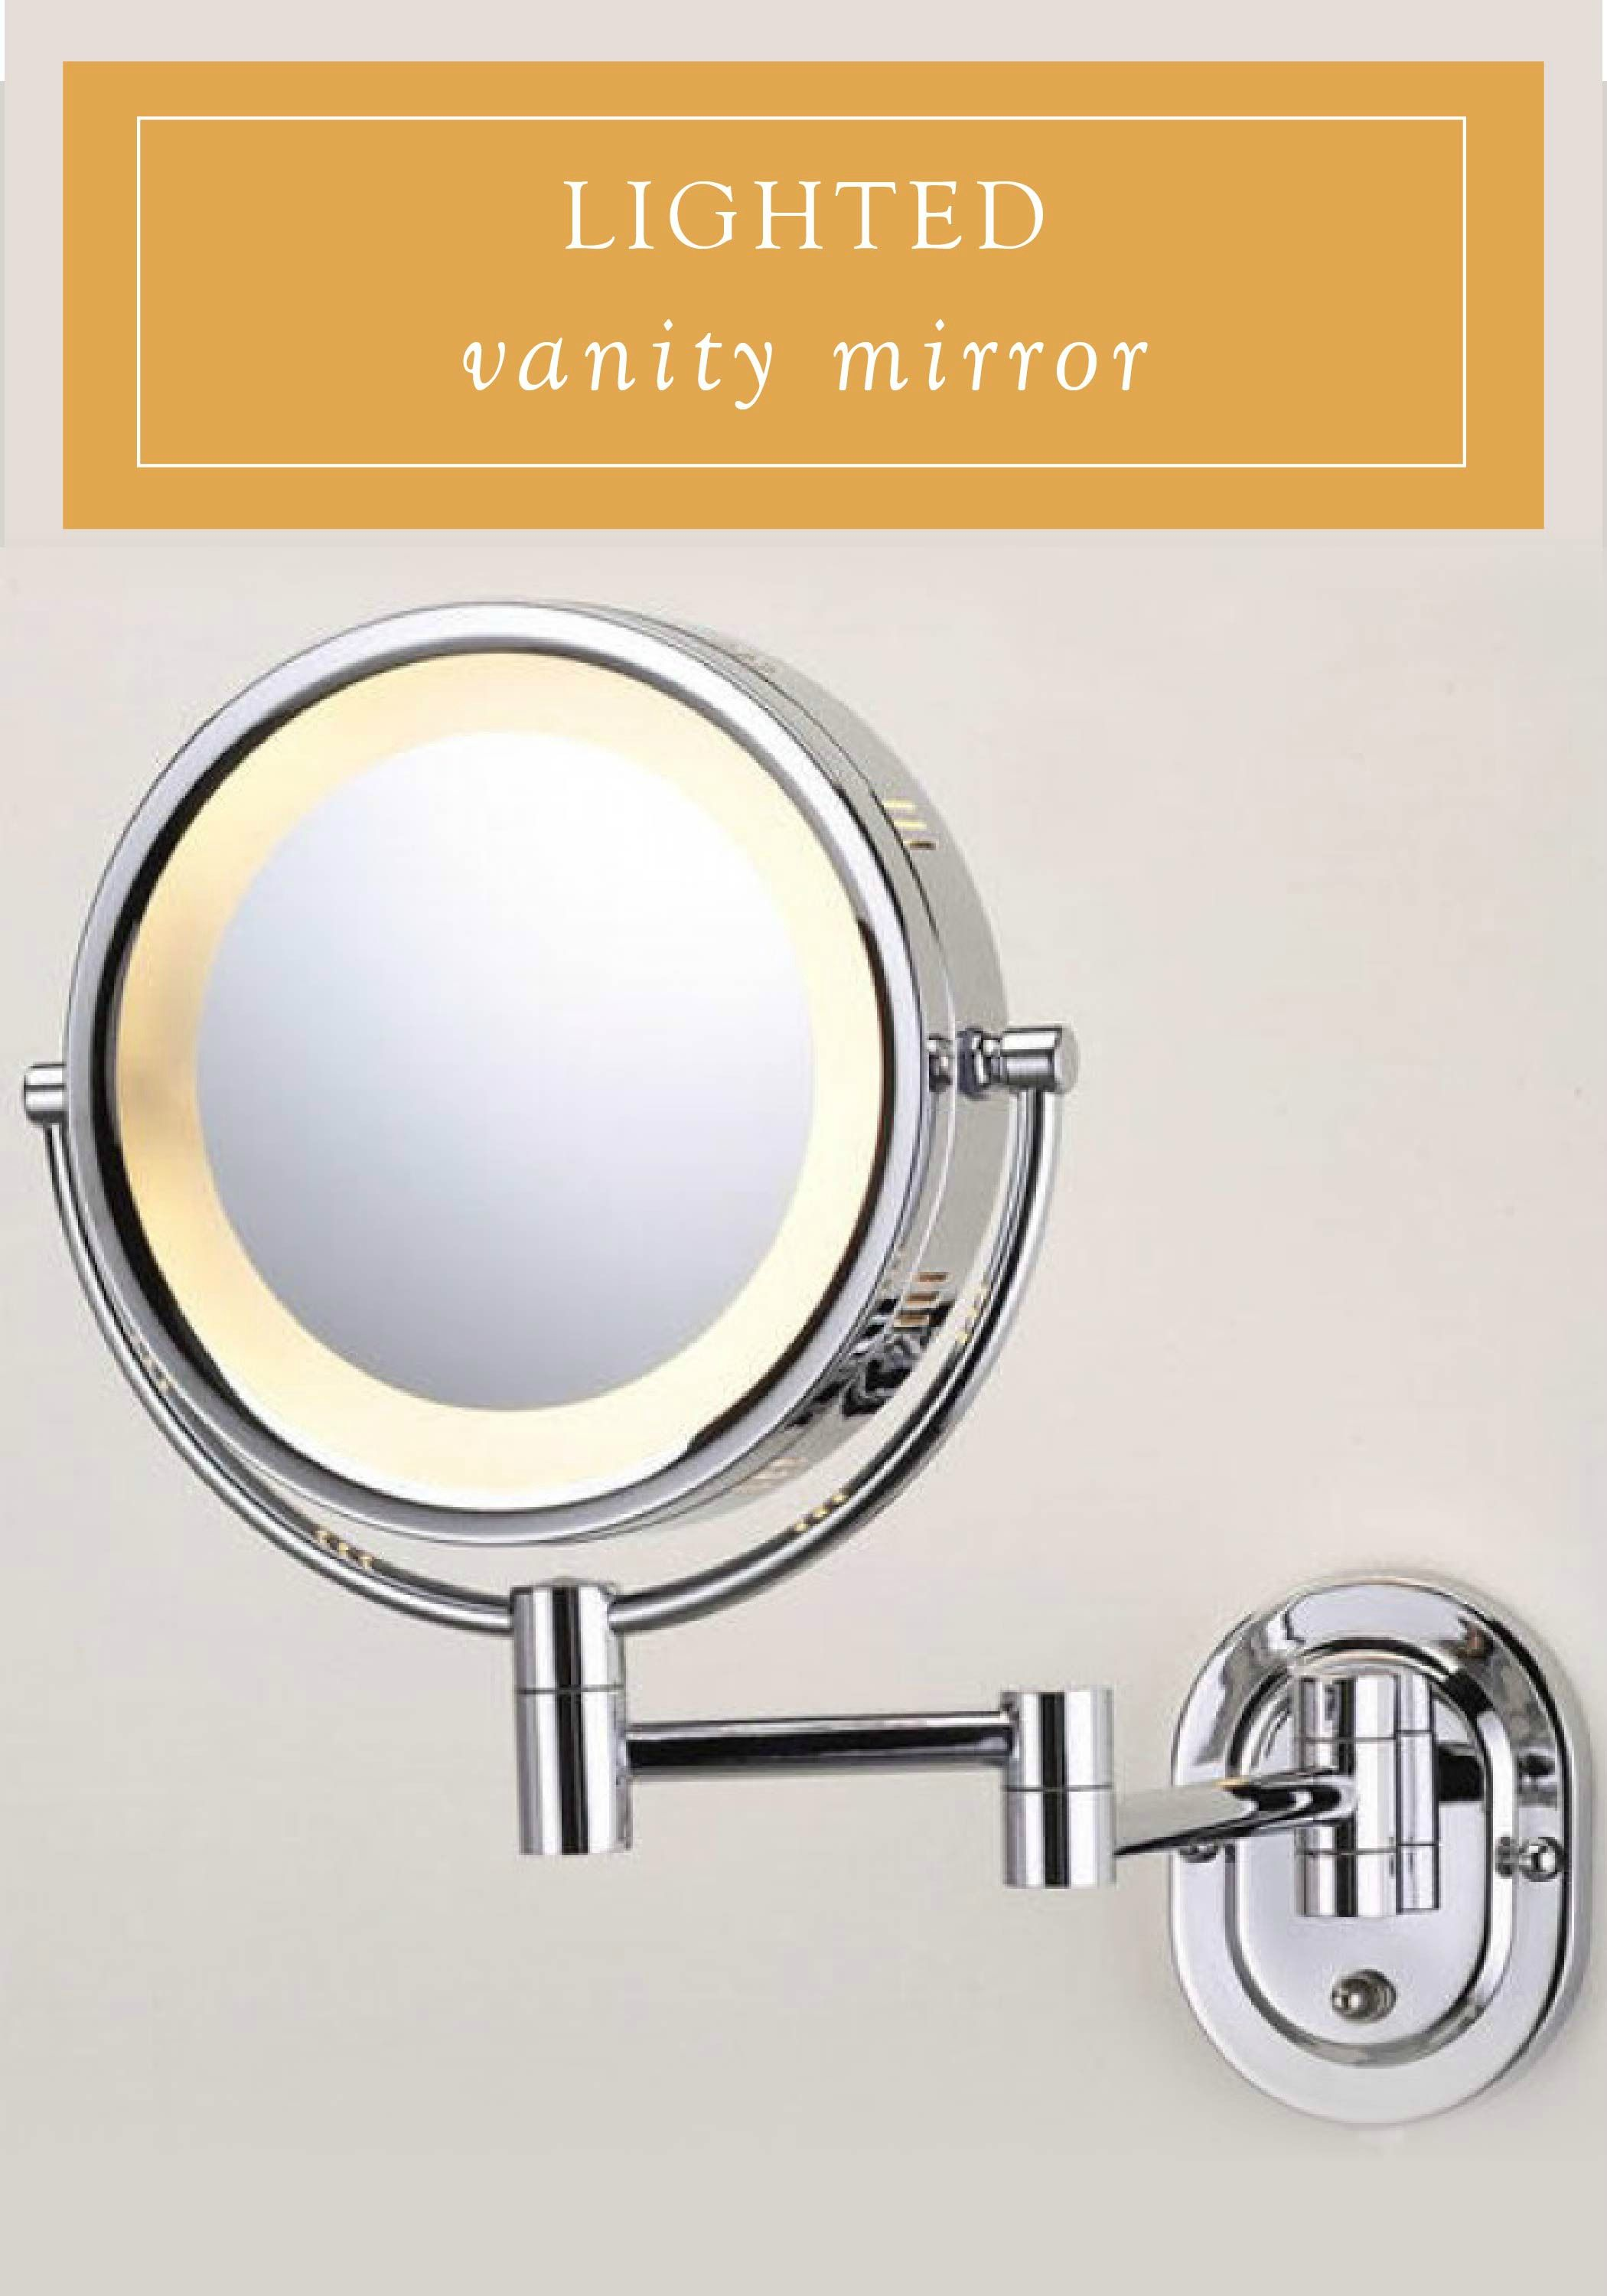 Swinging lighted wall mirror images 146